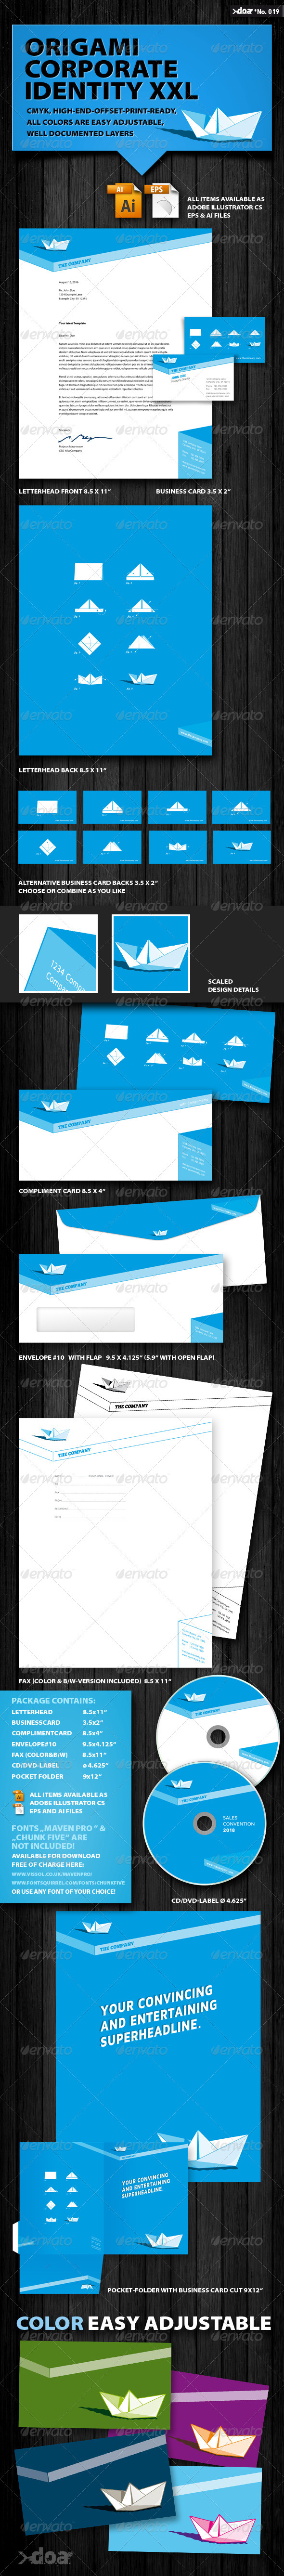 Origami Corporate Identity XXL - Stationery Print Templates